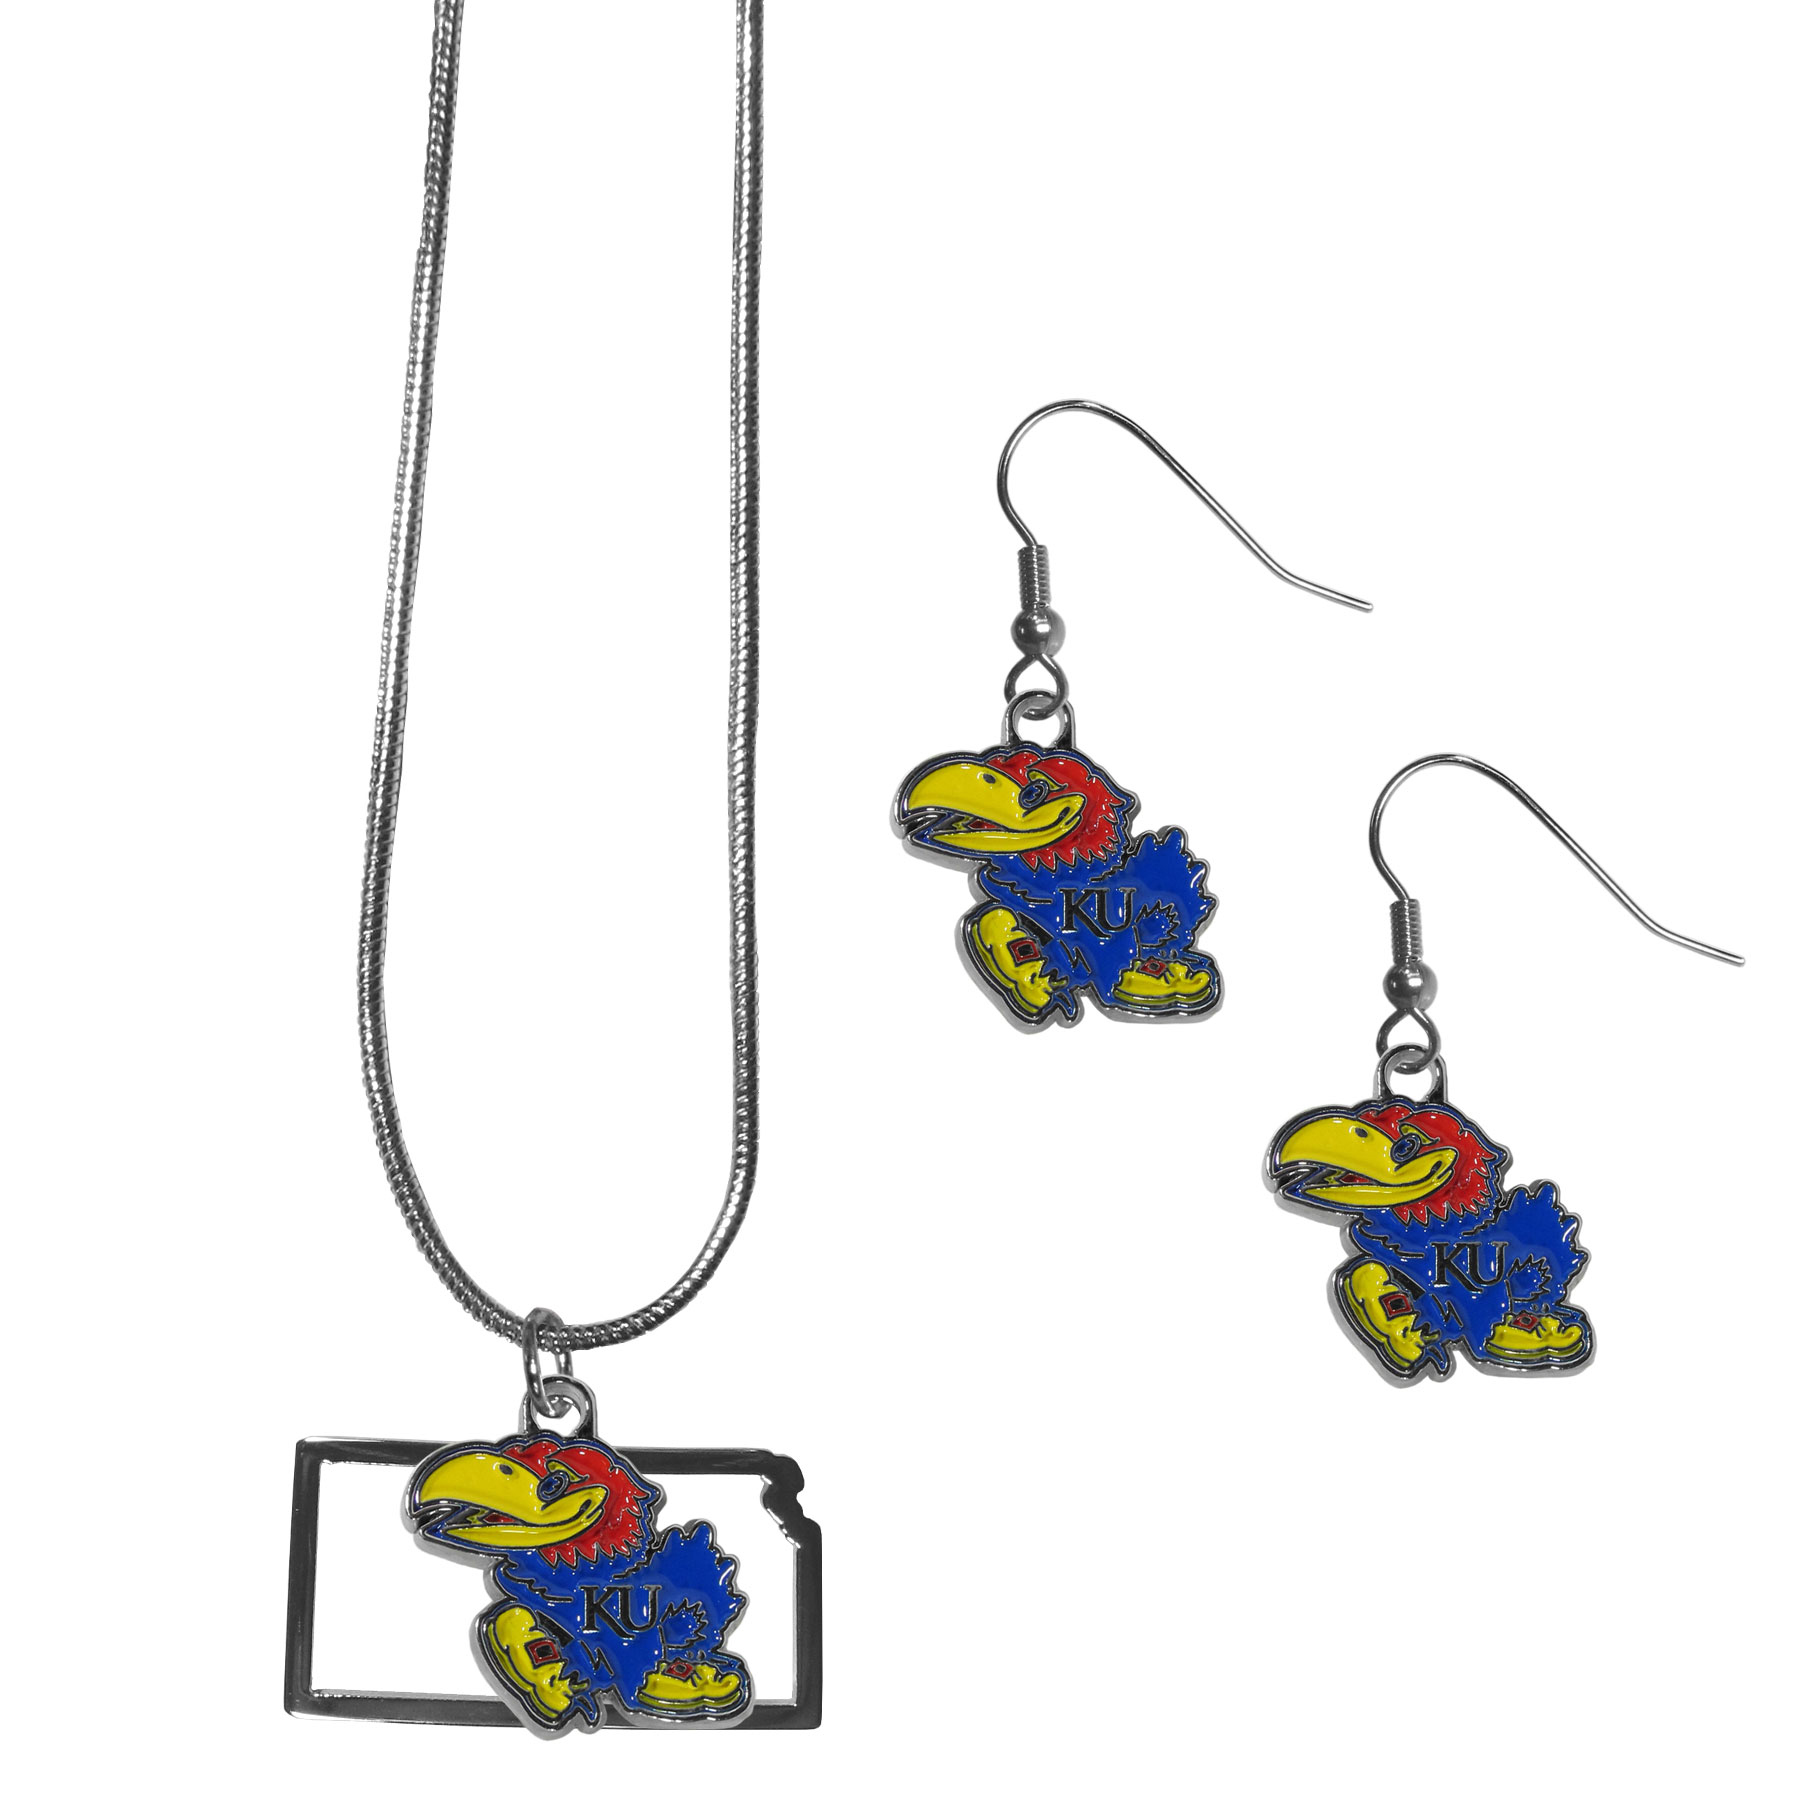 Kansas Jayhawks Dangle Earrings and State Necklace Set - Get in on the trend! State themes are a trend that just keeps getting more popular and this jewelry set takes the state style and give it a sporty twist with a Kansas Jayhawks necklace that features an Arizona state outline charm paired with a beautiful team charm and matching team charm dangle earrings. The earrings feature hypoallergenic fishhook posts that are nickel free.